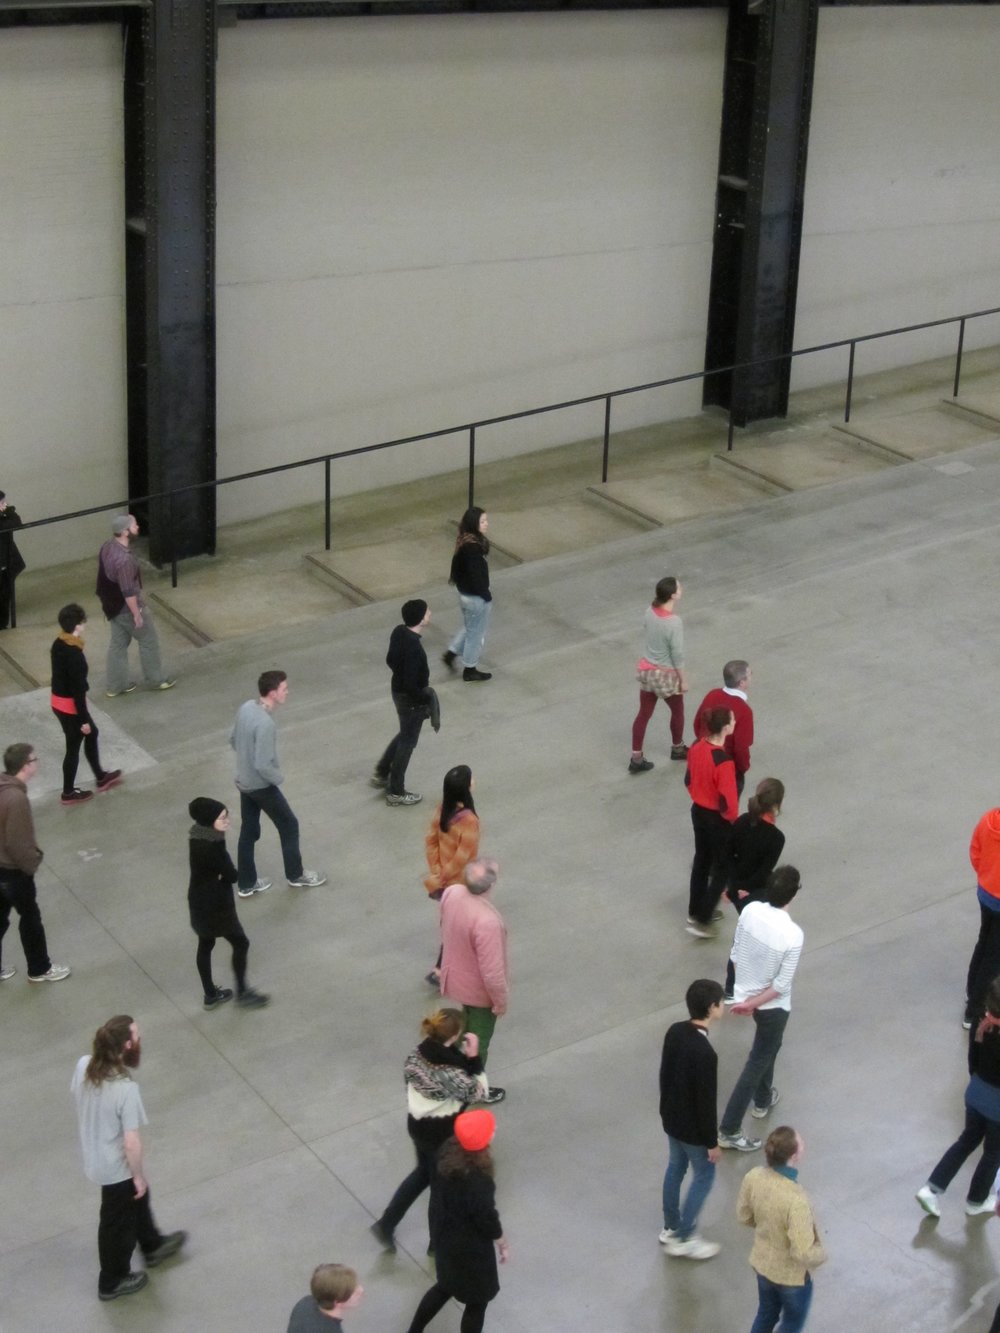 Tino Seghal,  These Associations , Tate Modern, Unilever Series Commission, 2012